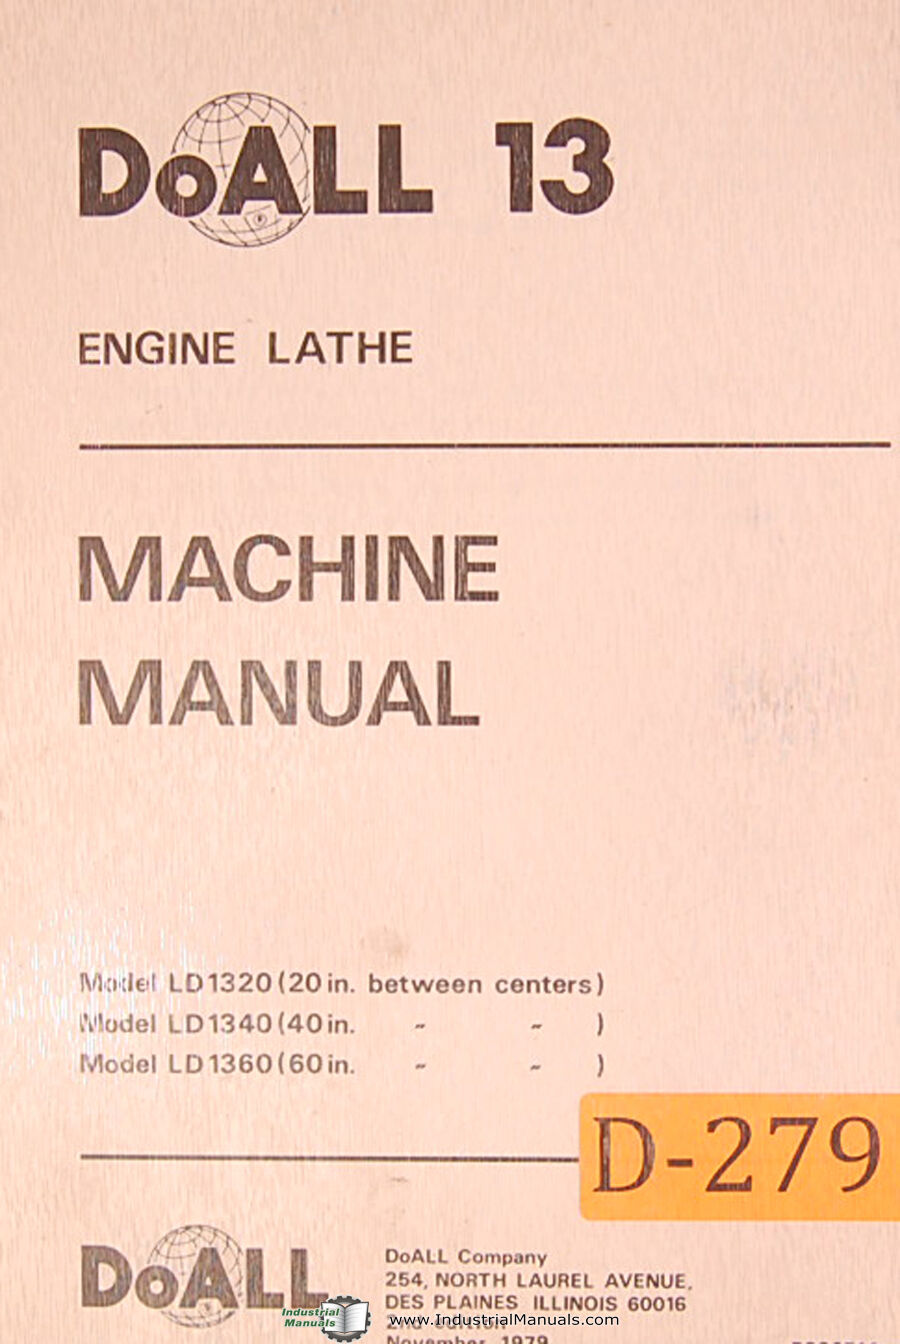 Doall 13 LD 1320, 40 60 Engine Lathe Wiring, Parts and Maintenance Manual  1979 1 of 3FREE Shipping ...